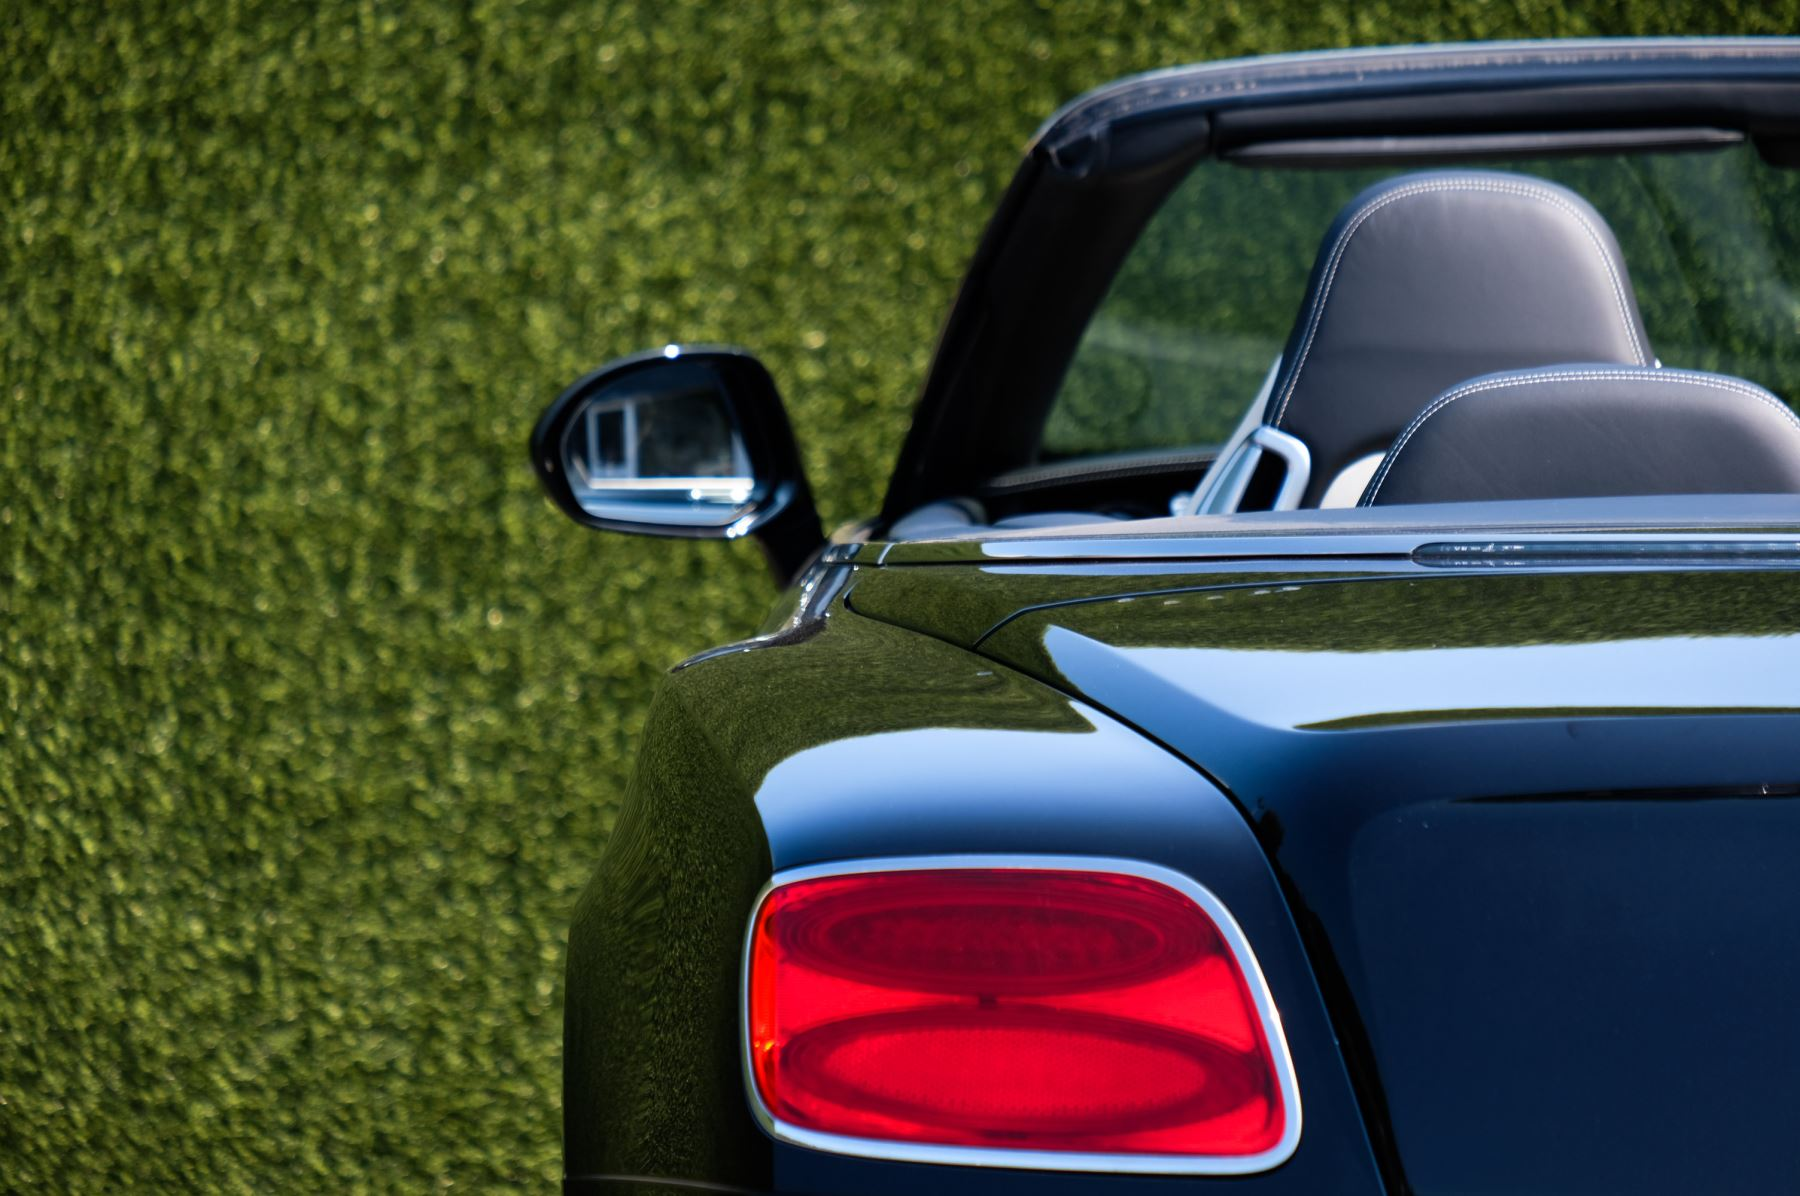 Bentley Continental GTC 4.0 V8 S - Mulliner Driving Specification image 8